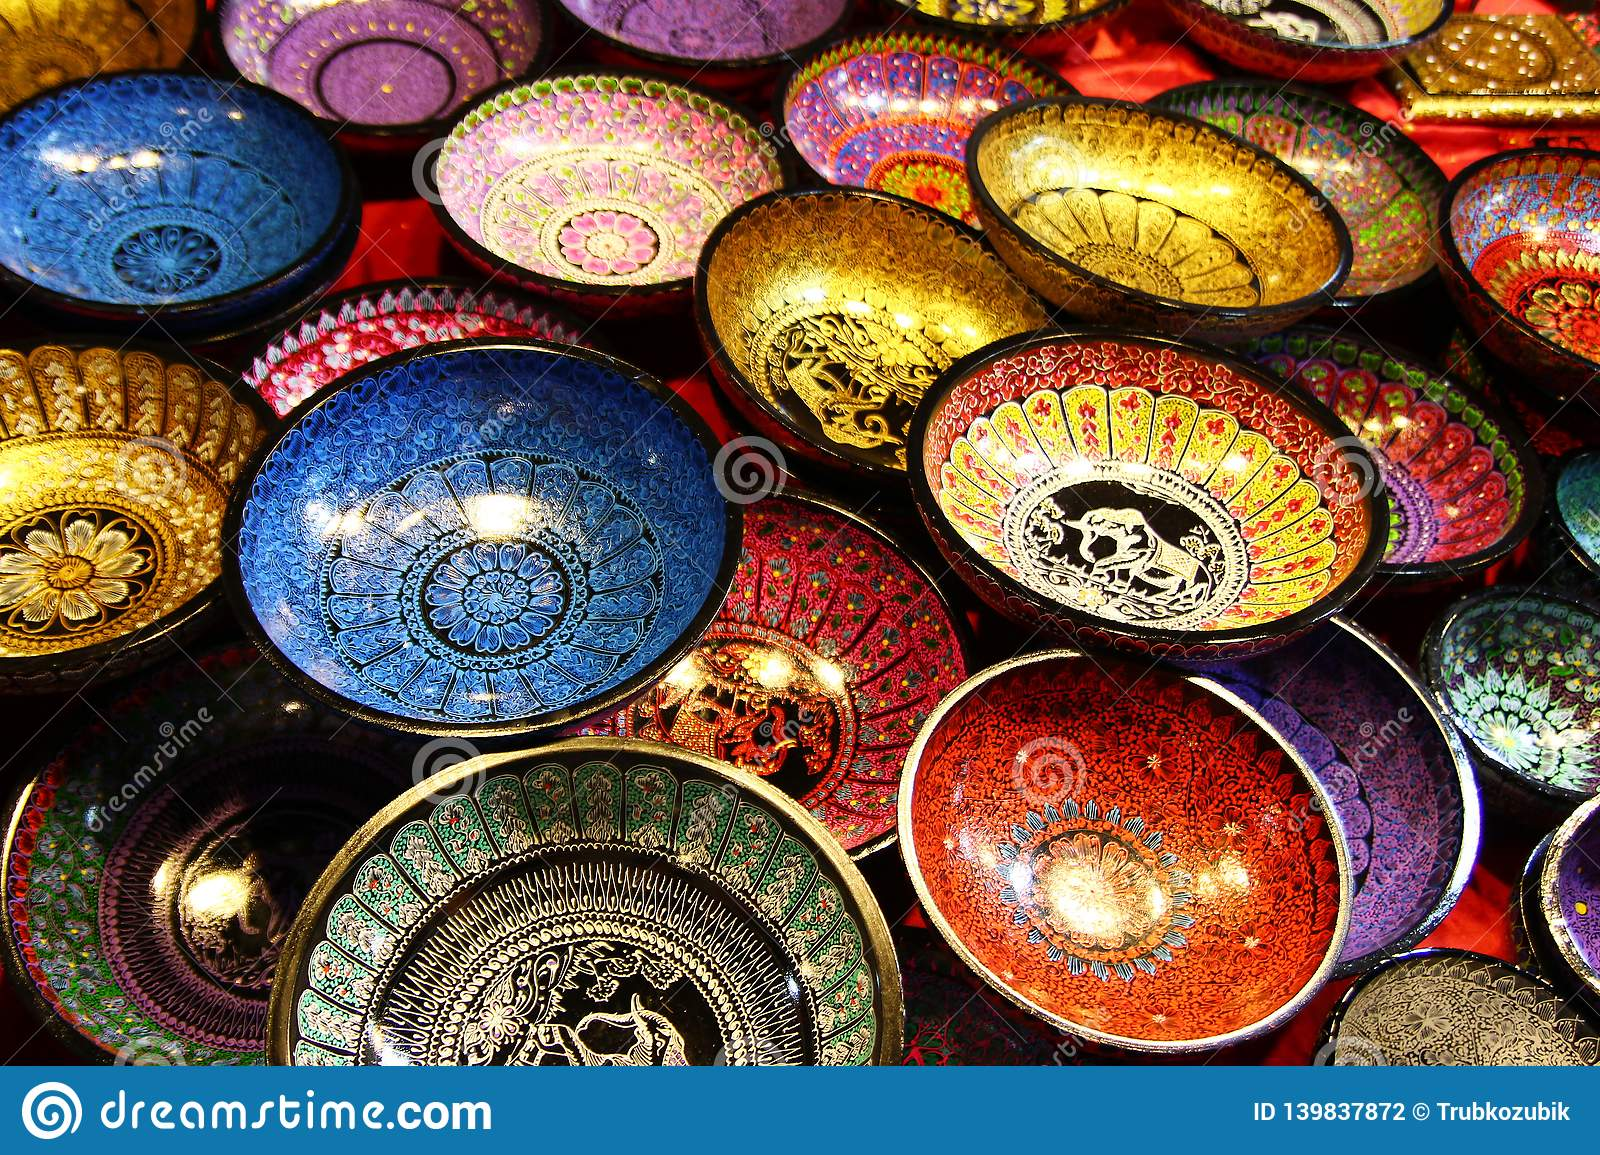 Chiang Mai, Thailand - December 2, 2017: Painted colorful wooden plates with traditional Thai design.